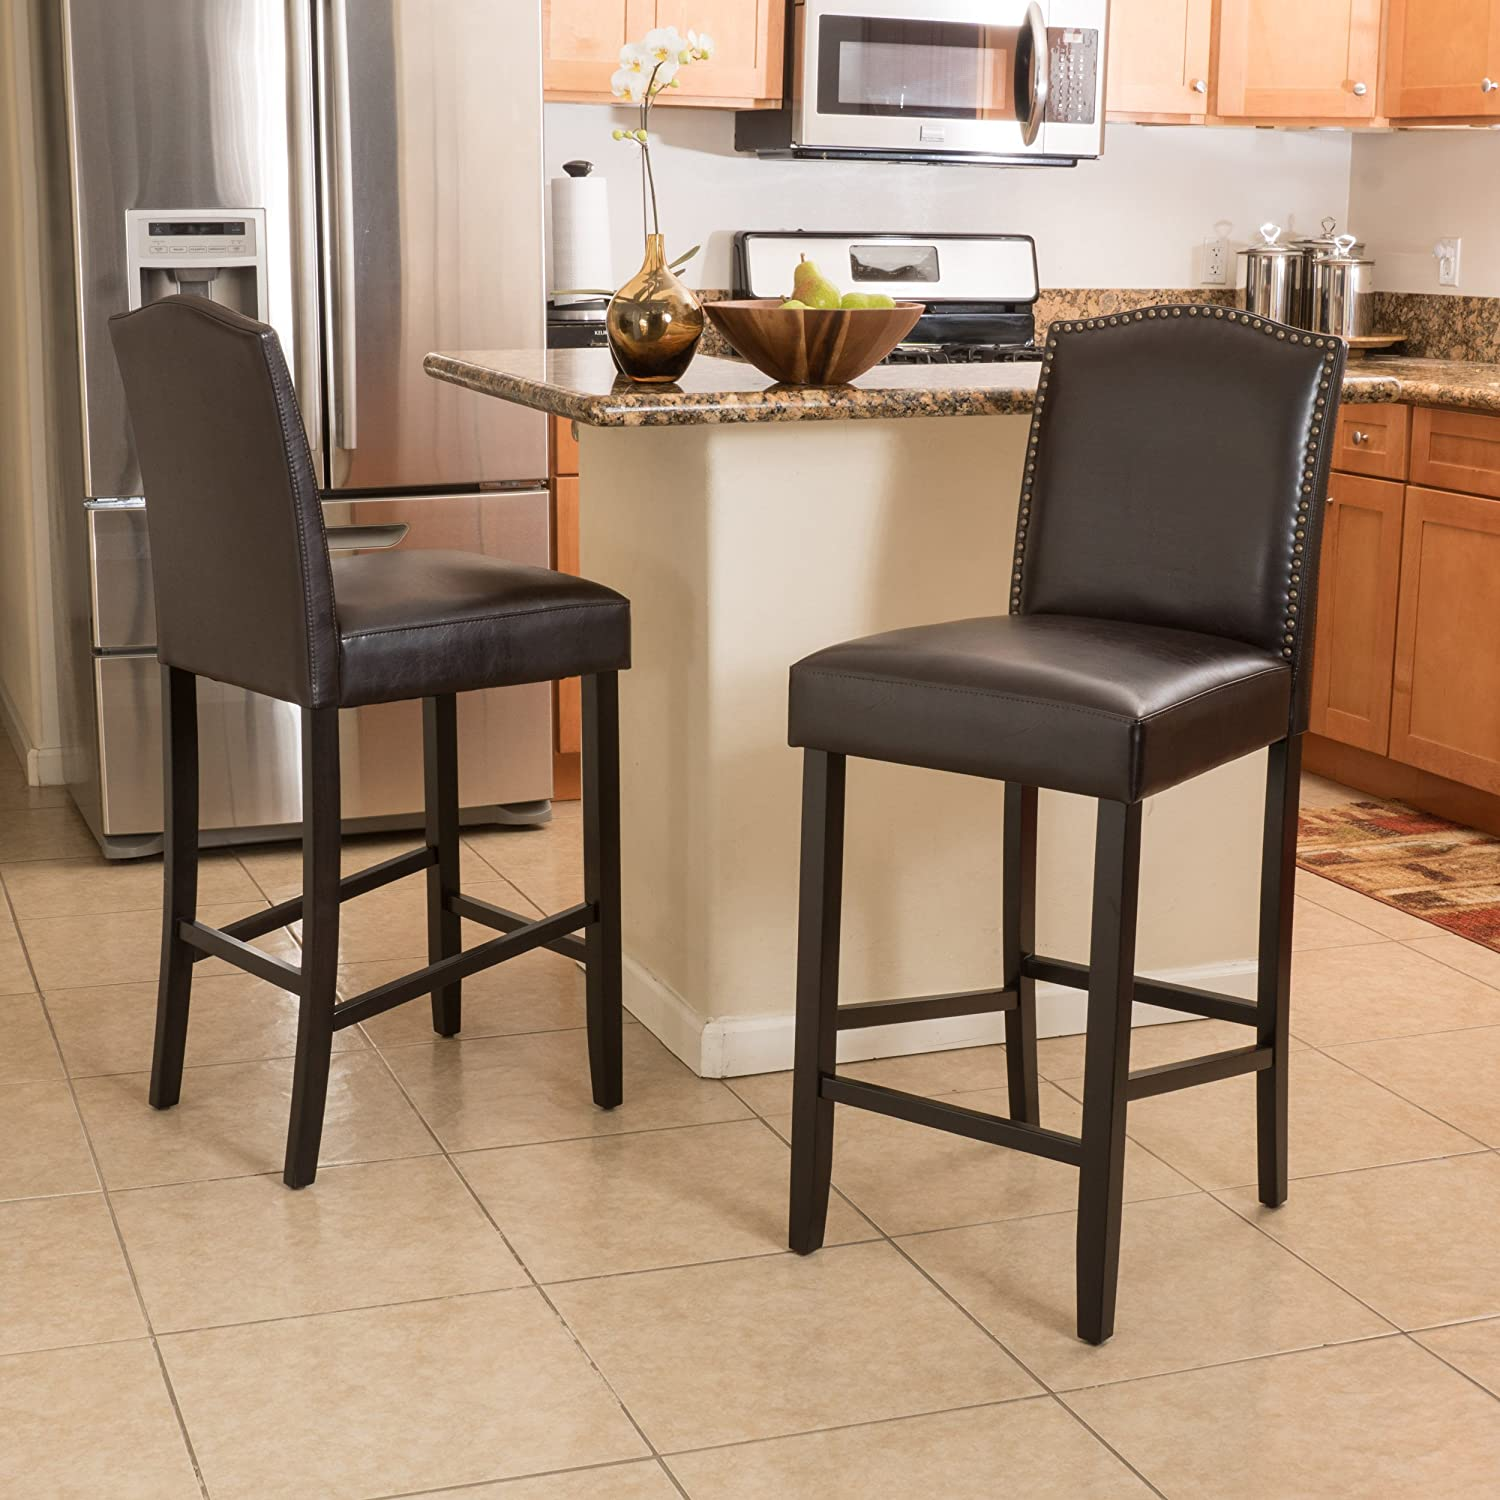 Amazon com great deal furniture auburn bonded leather backed bar stool with nail head accents brown set of 2 kitchen dining